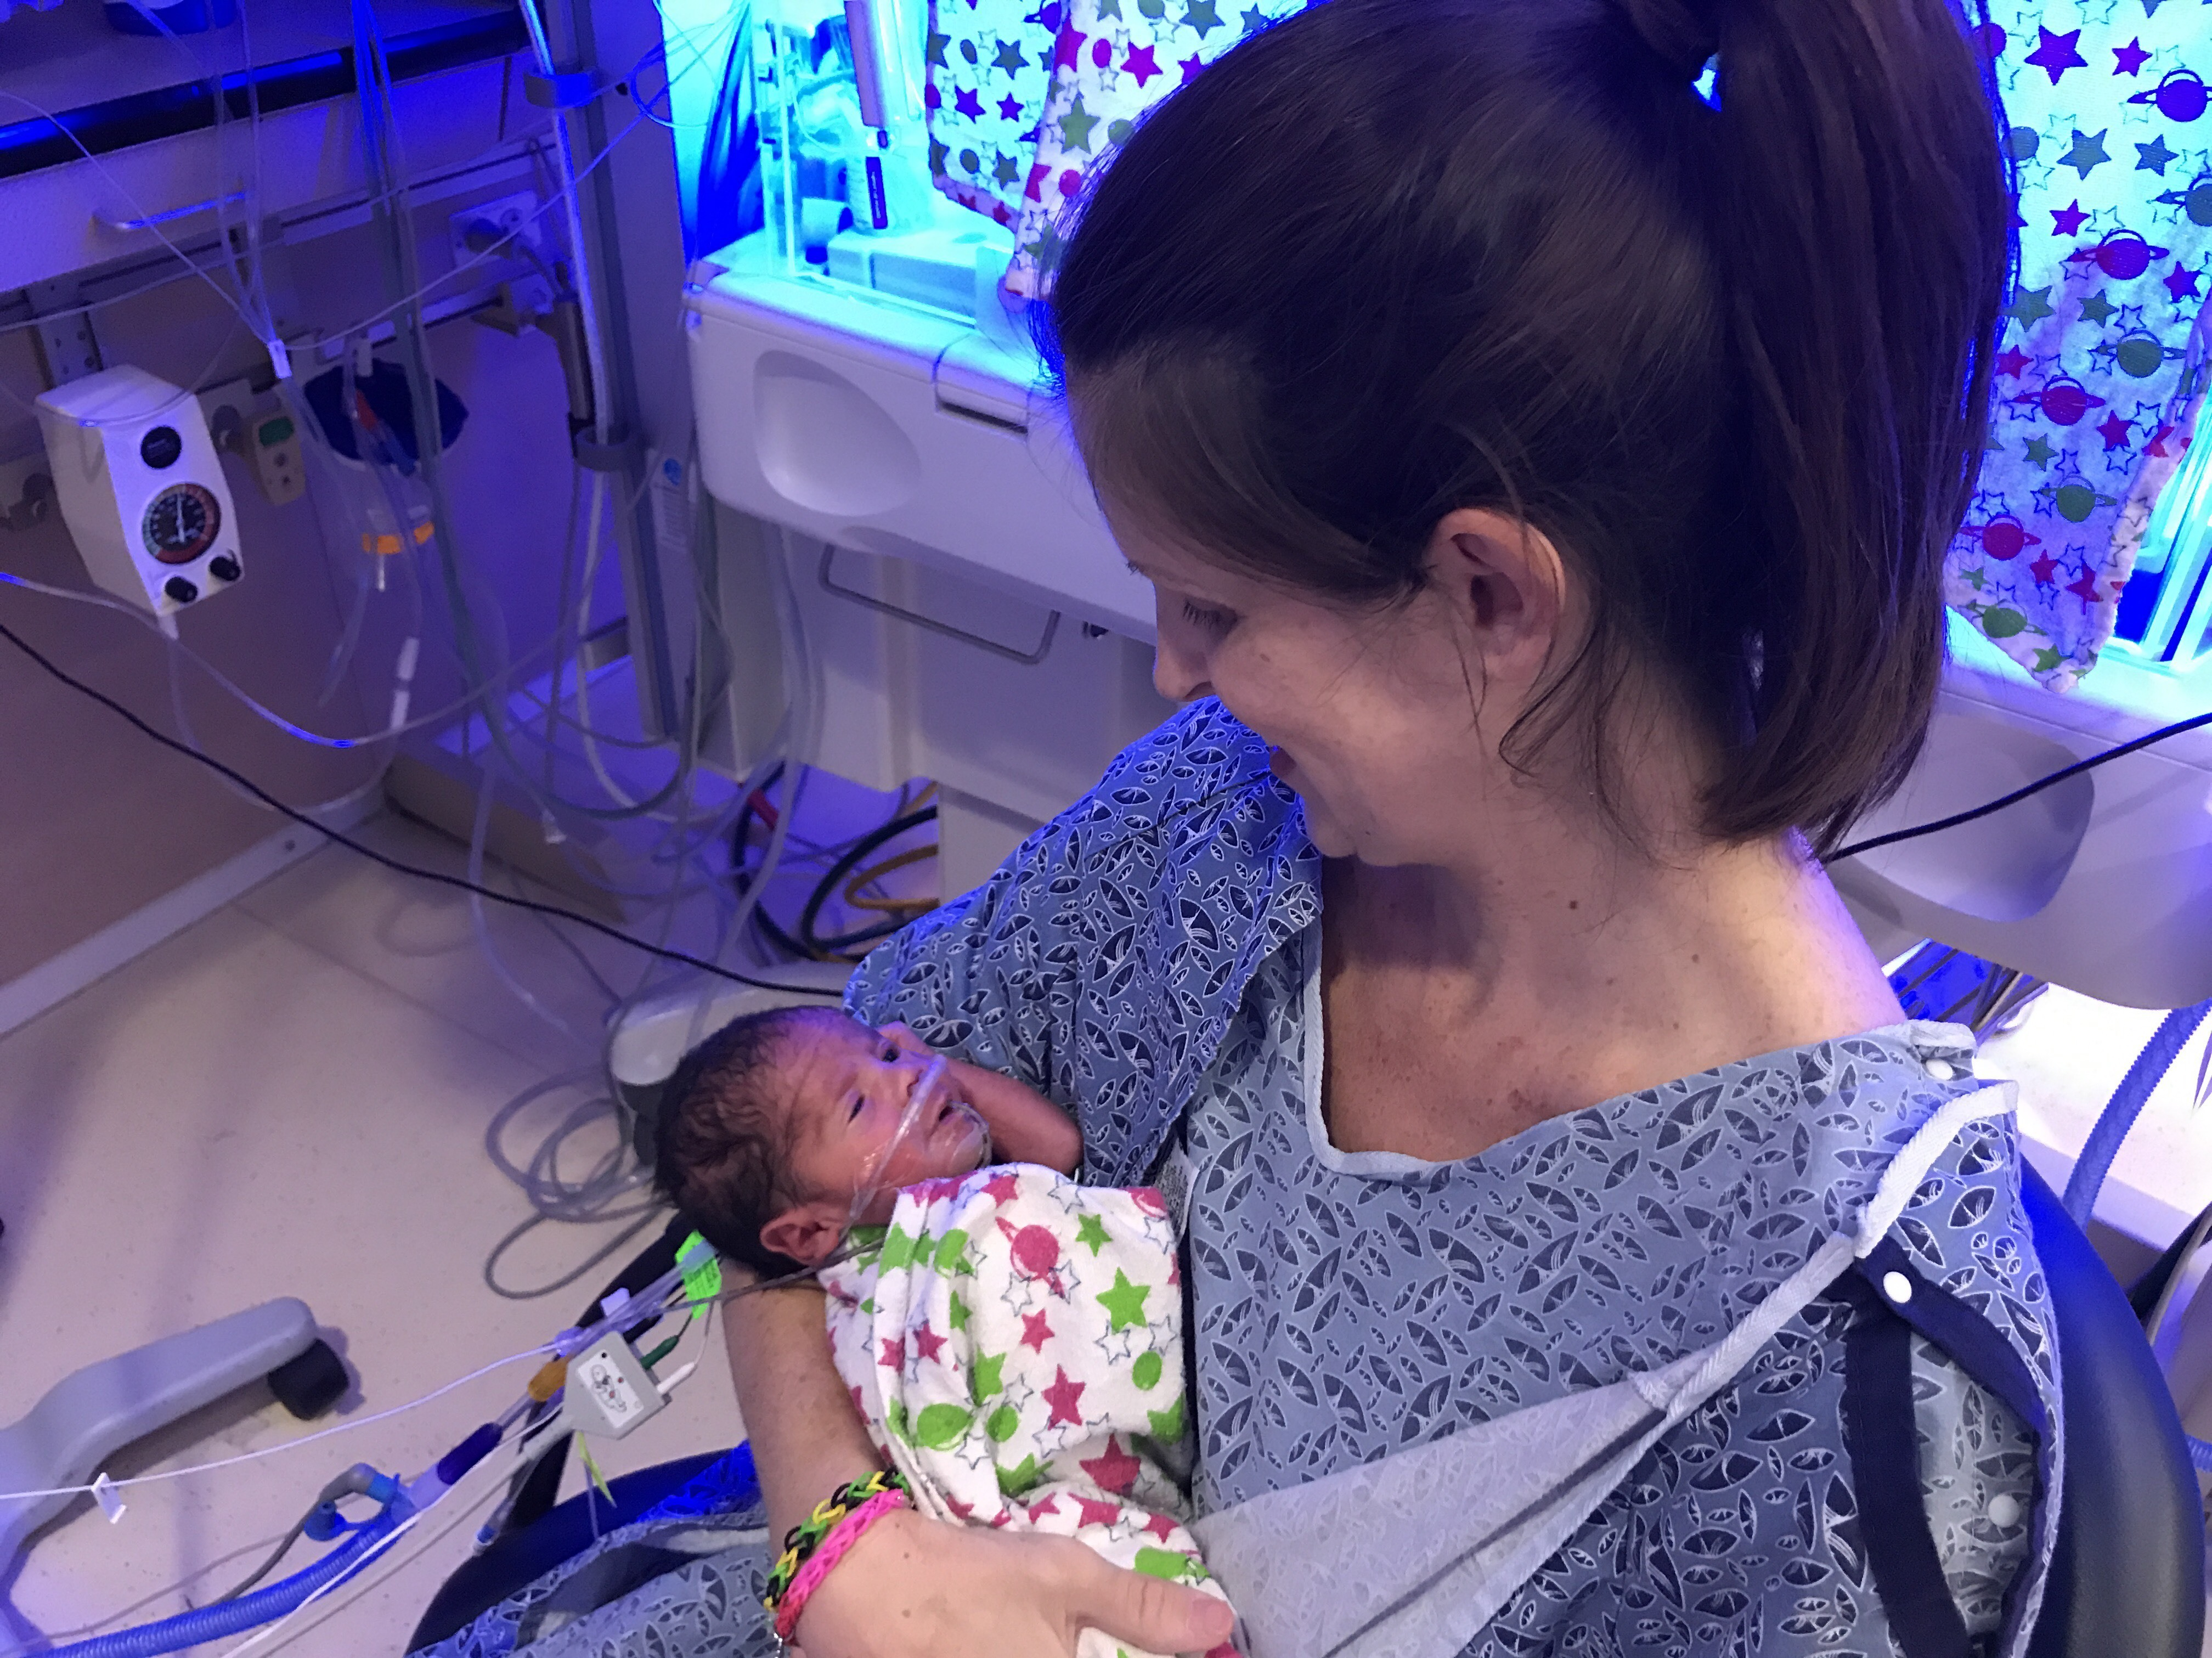 Cayti Kane was diagnosed with placenta accreta, a dangerous complication. But Pomona Valley Hospital Medical Center was prepared and two weeks later, Kane delivered a healthy boy via C-section.